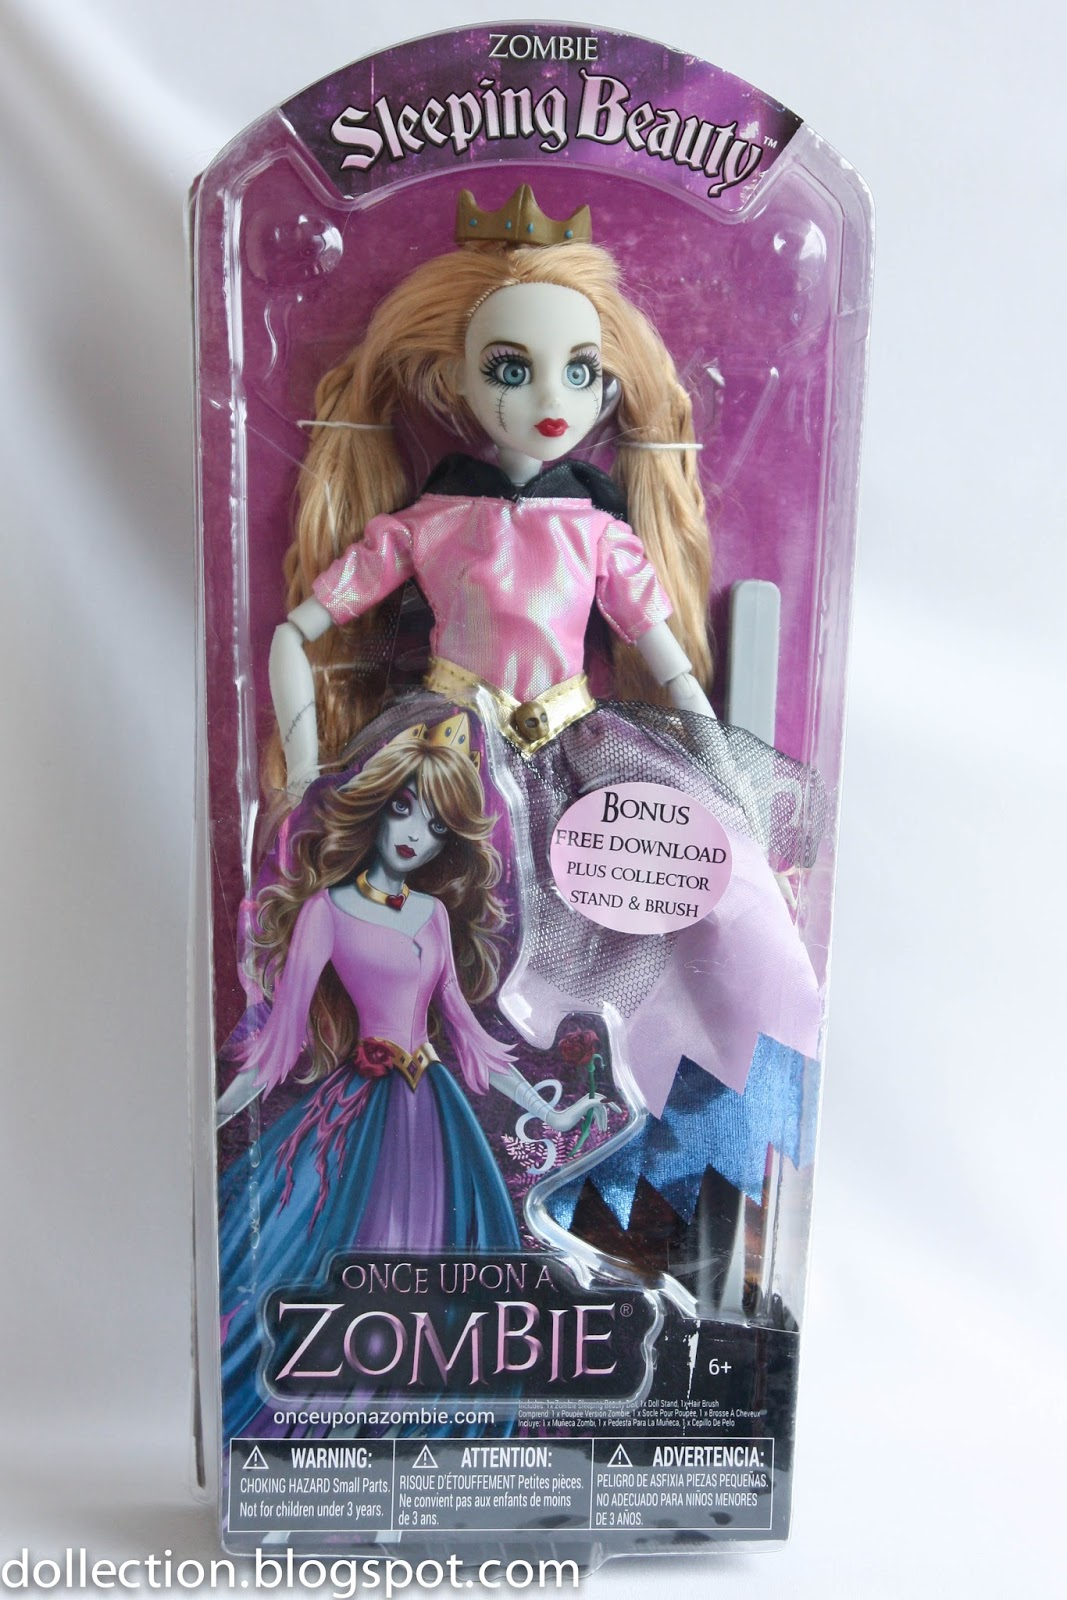 NEW* Once Upon A Zombie Sleeping Beauty Doll